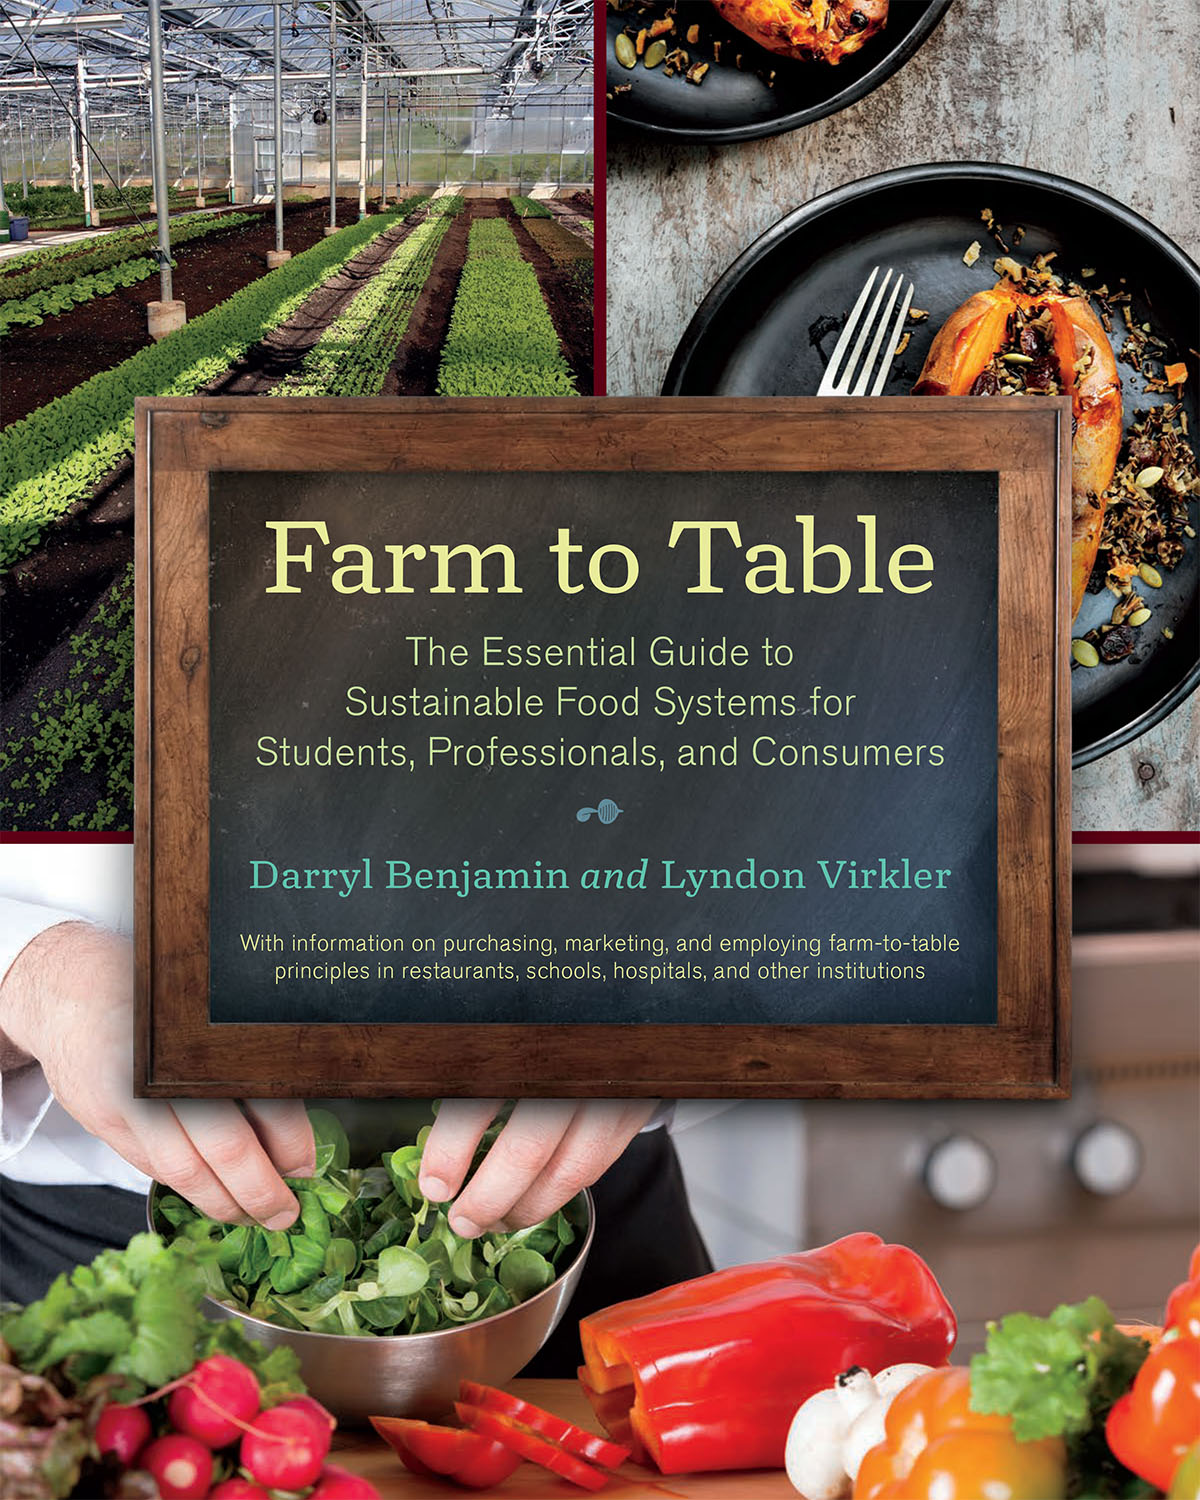 Farm To Table By Darryl Benjamin At Chelsea Green Publishing